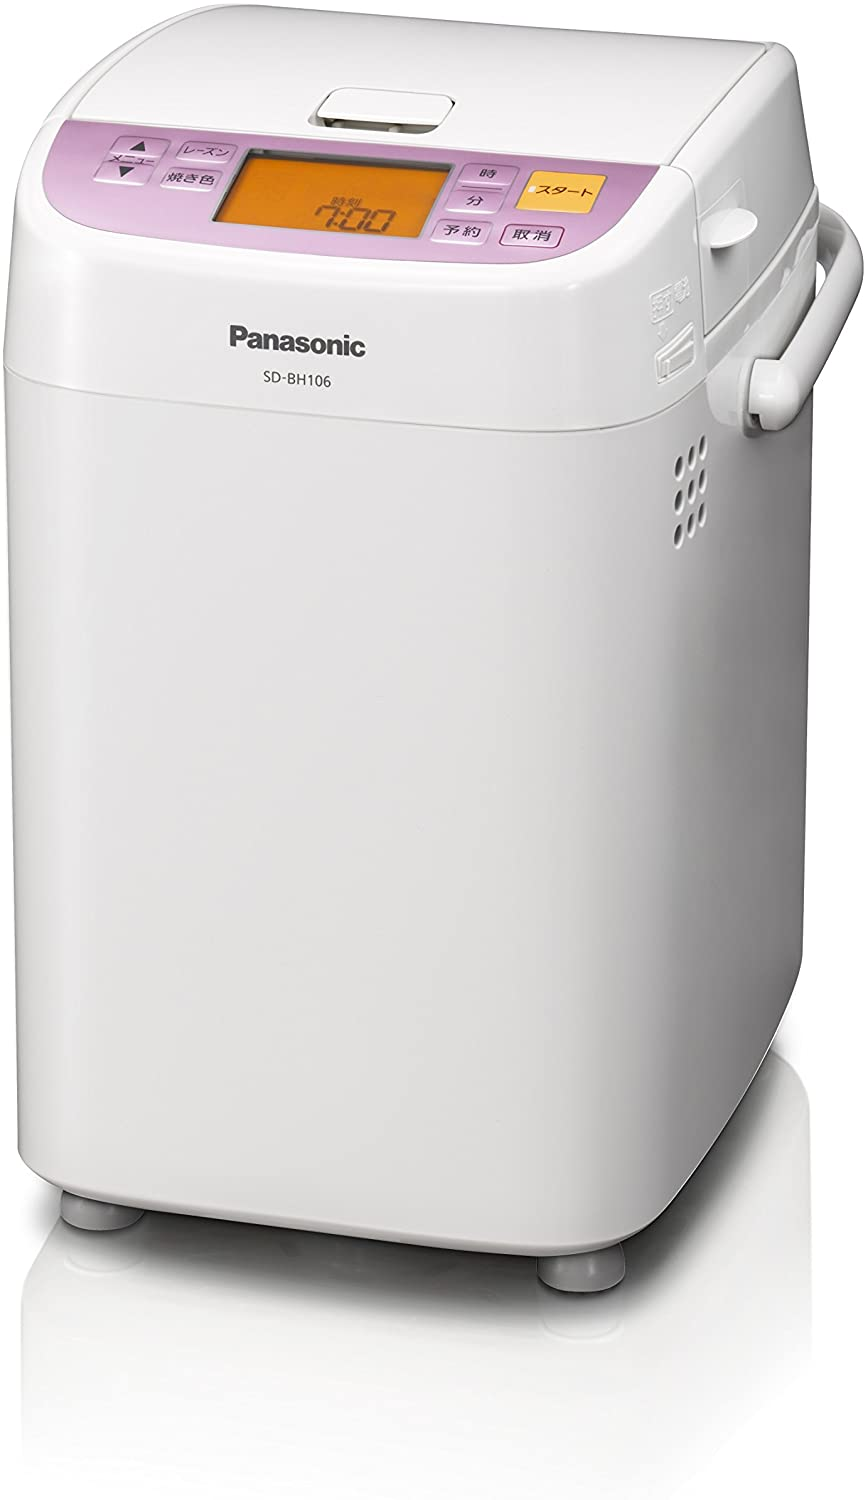 Panasonic SD-BH106-PW Bread Machine